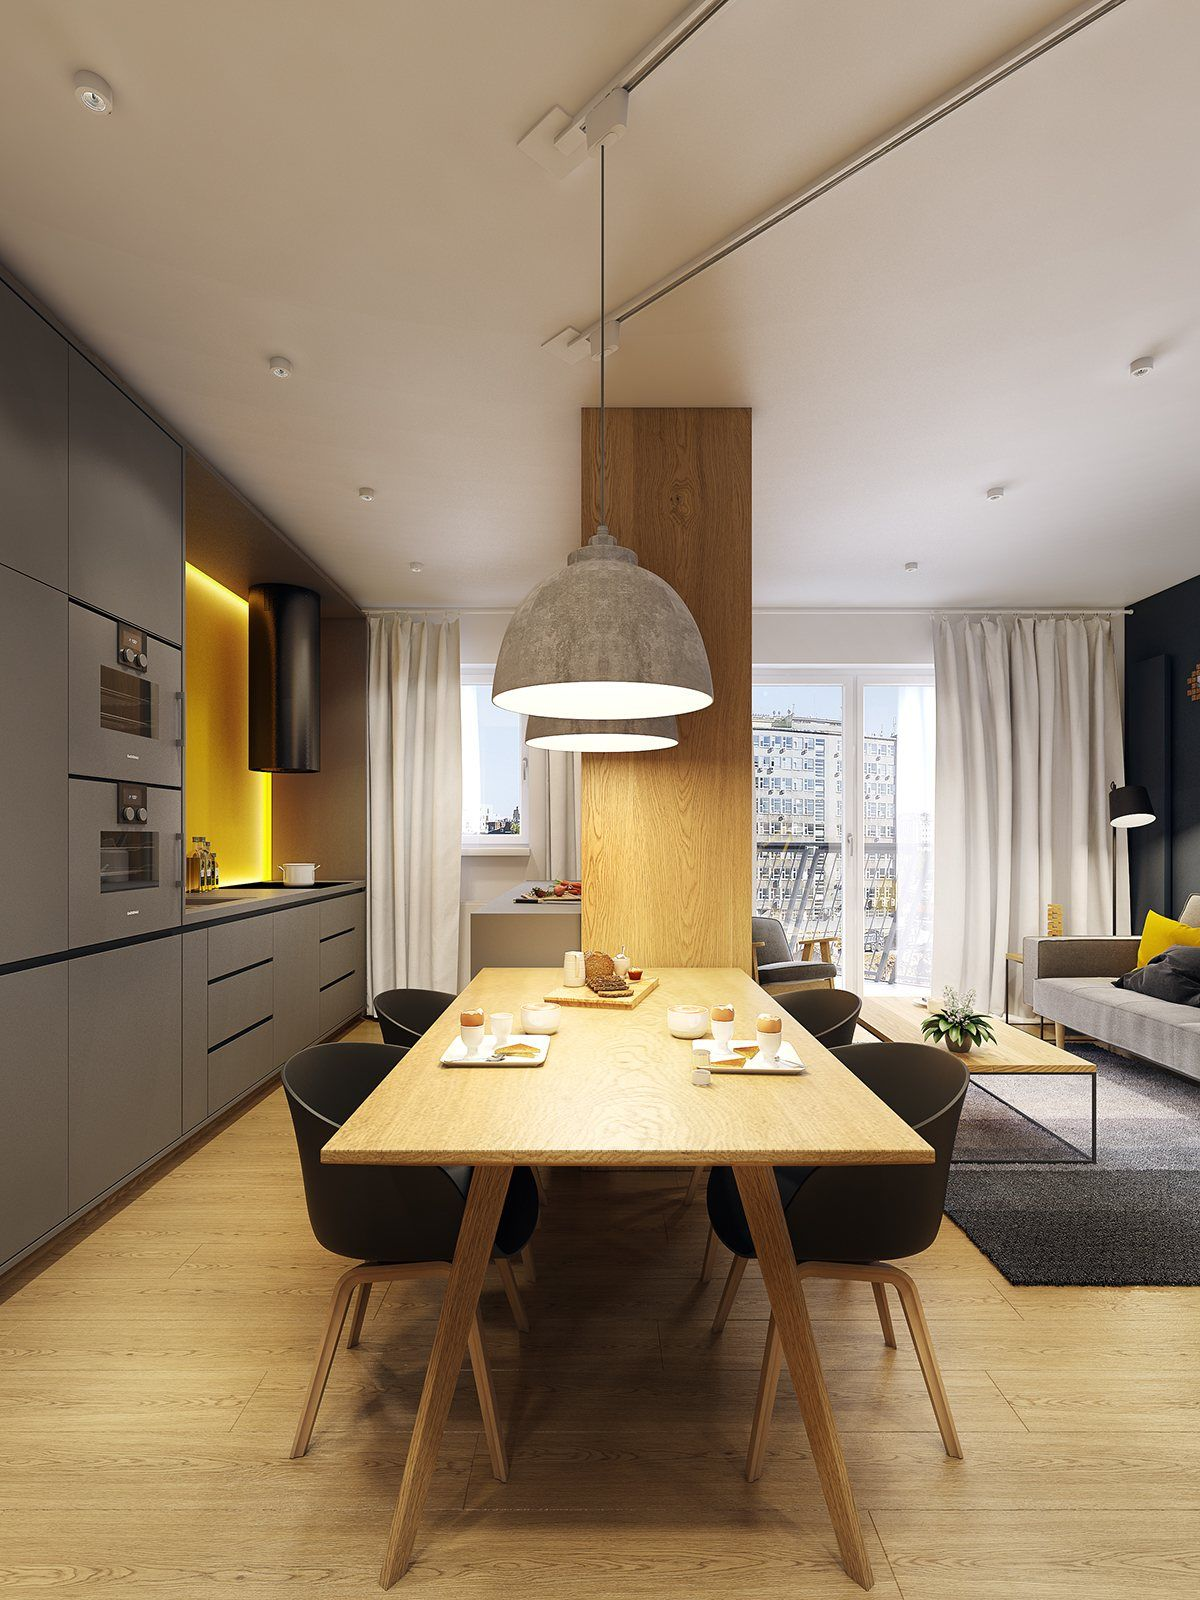 A Modern Scandinavian Inspired Apartment With Ingenius Features Apartment Interior Apartment Interior Design Small Apartment Design